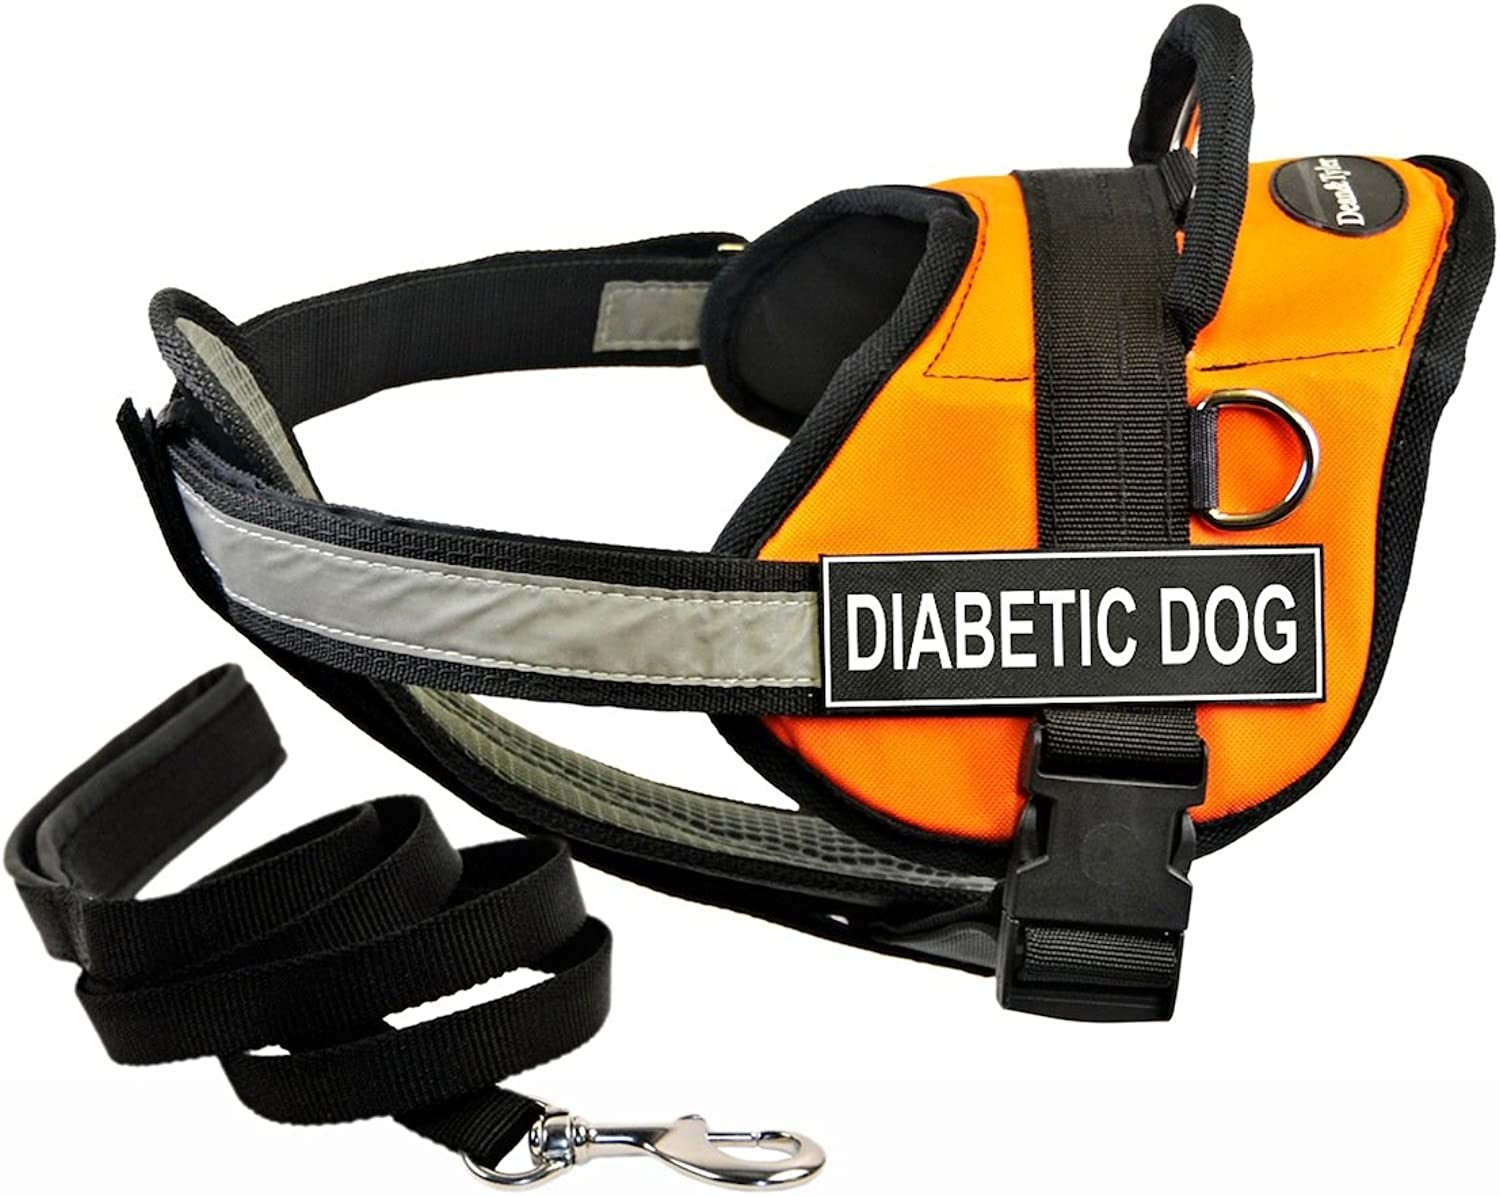 Dean & Tyler's DT Works orange DIABETIC DOG Harness with Chest Padding, XSmall, and Black 6 ft Padded Puppy Leash.